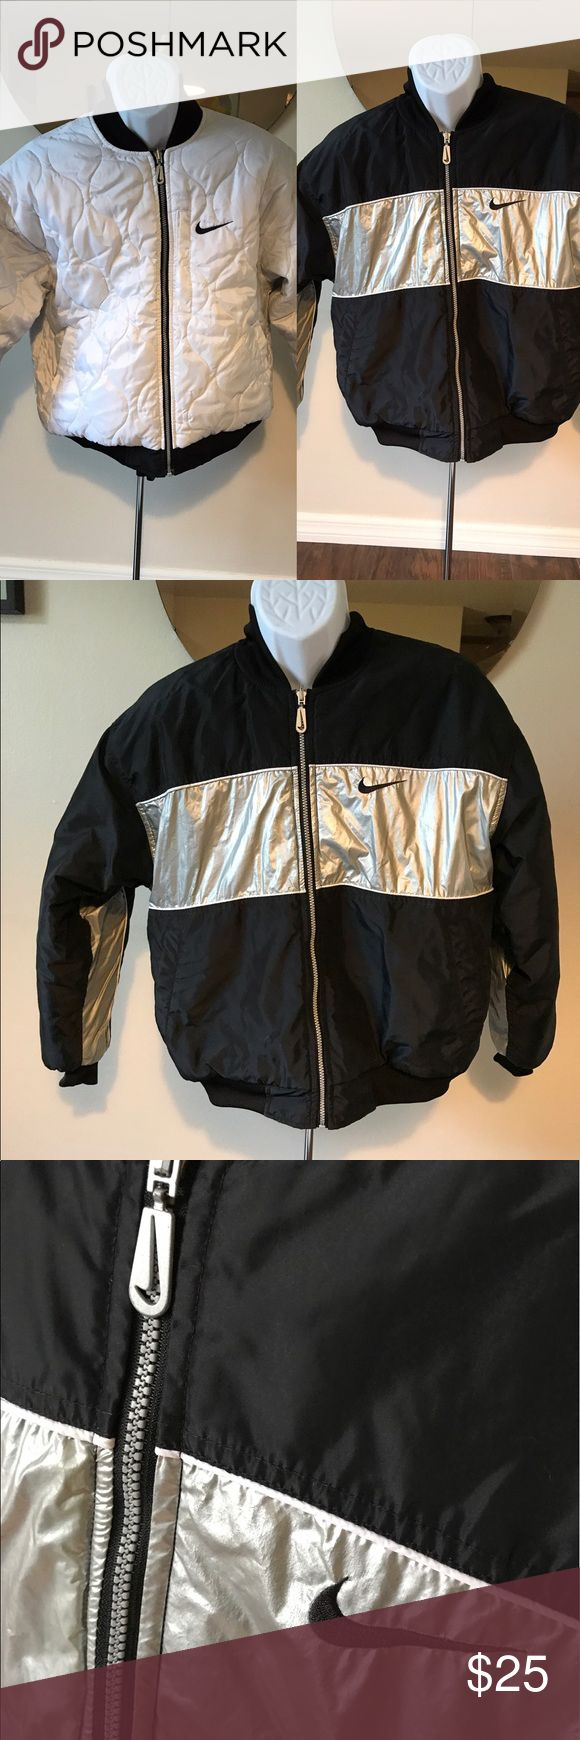 "Nike reversible black  white winter coat women's M Nike reversible winter coat. This is a women's size medium or 8–10. This jacket is in amazing condition no imperfections to note and I believe it's from the 90s.  22"" shoulder to shoulder  24.5"" bust  26"" length Nike Jackets & Coats"